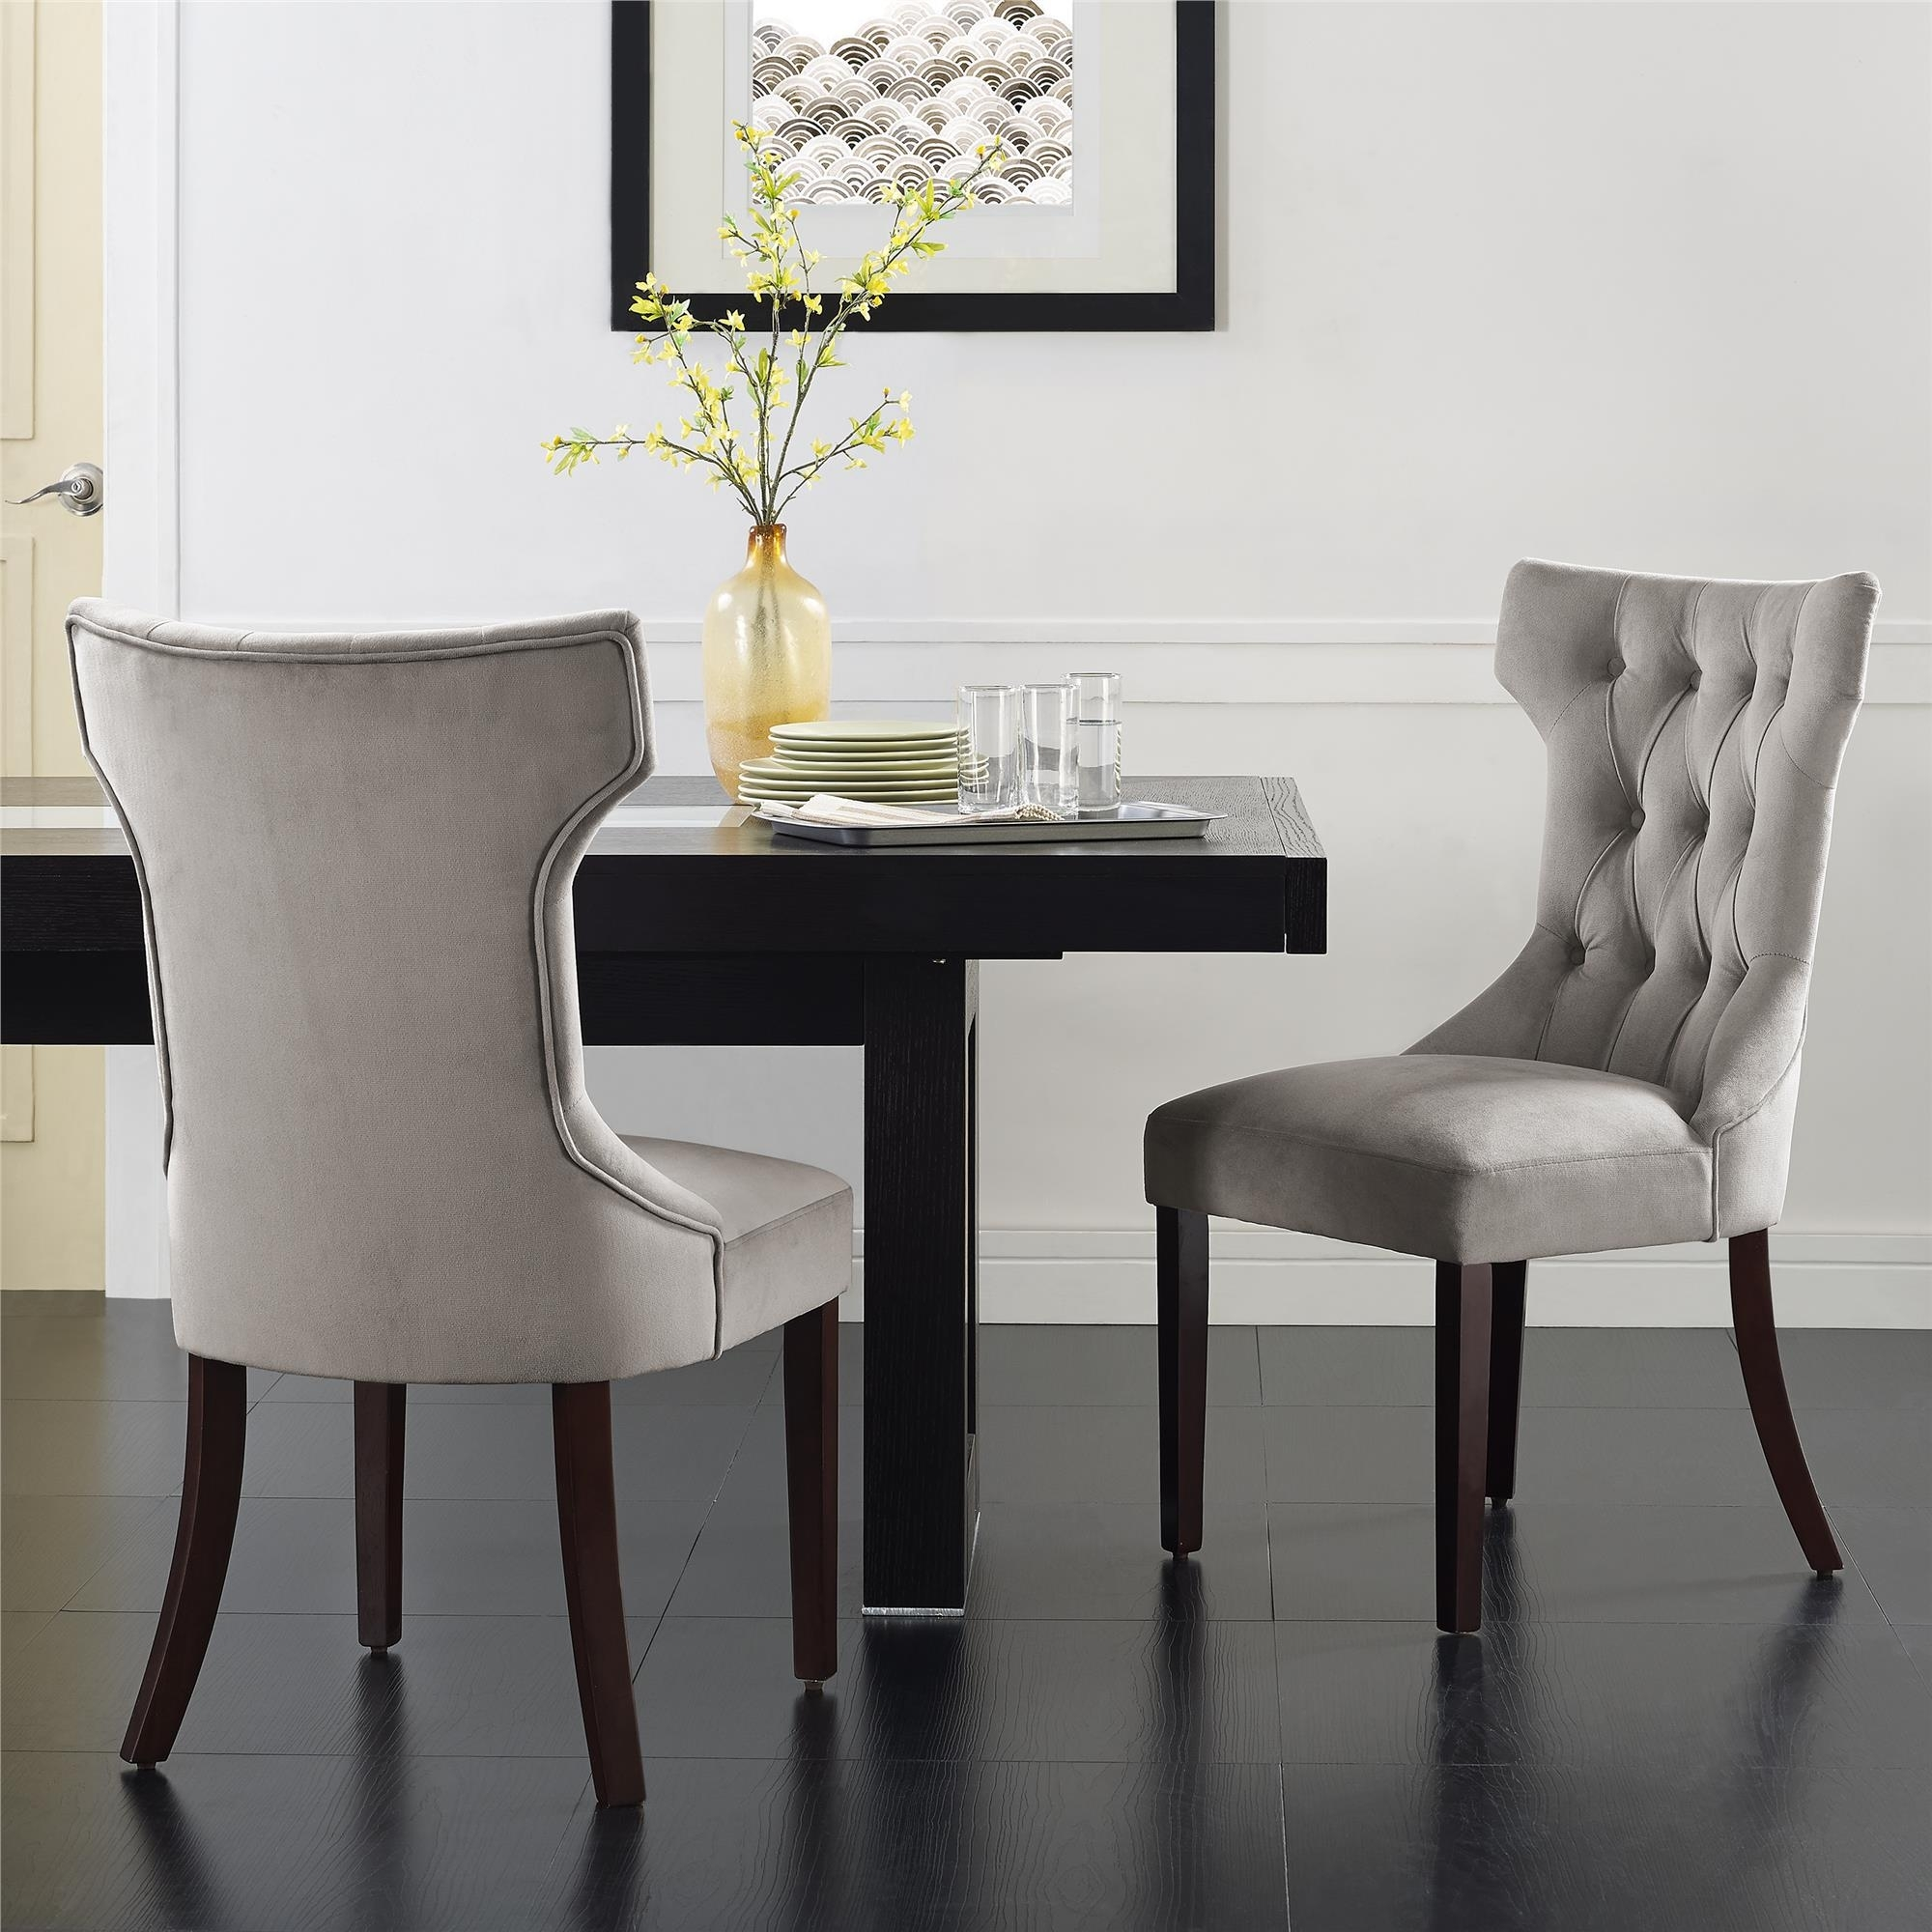 Dorel Living | Dorel Living Clairborne Tufted Dining Chair, Taupe In Newest Market 7 Piece Dining Sets With Side Chairs (Image 9 of 20)